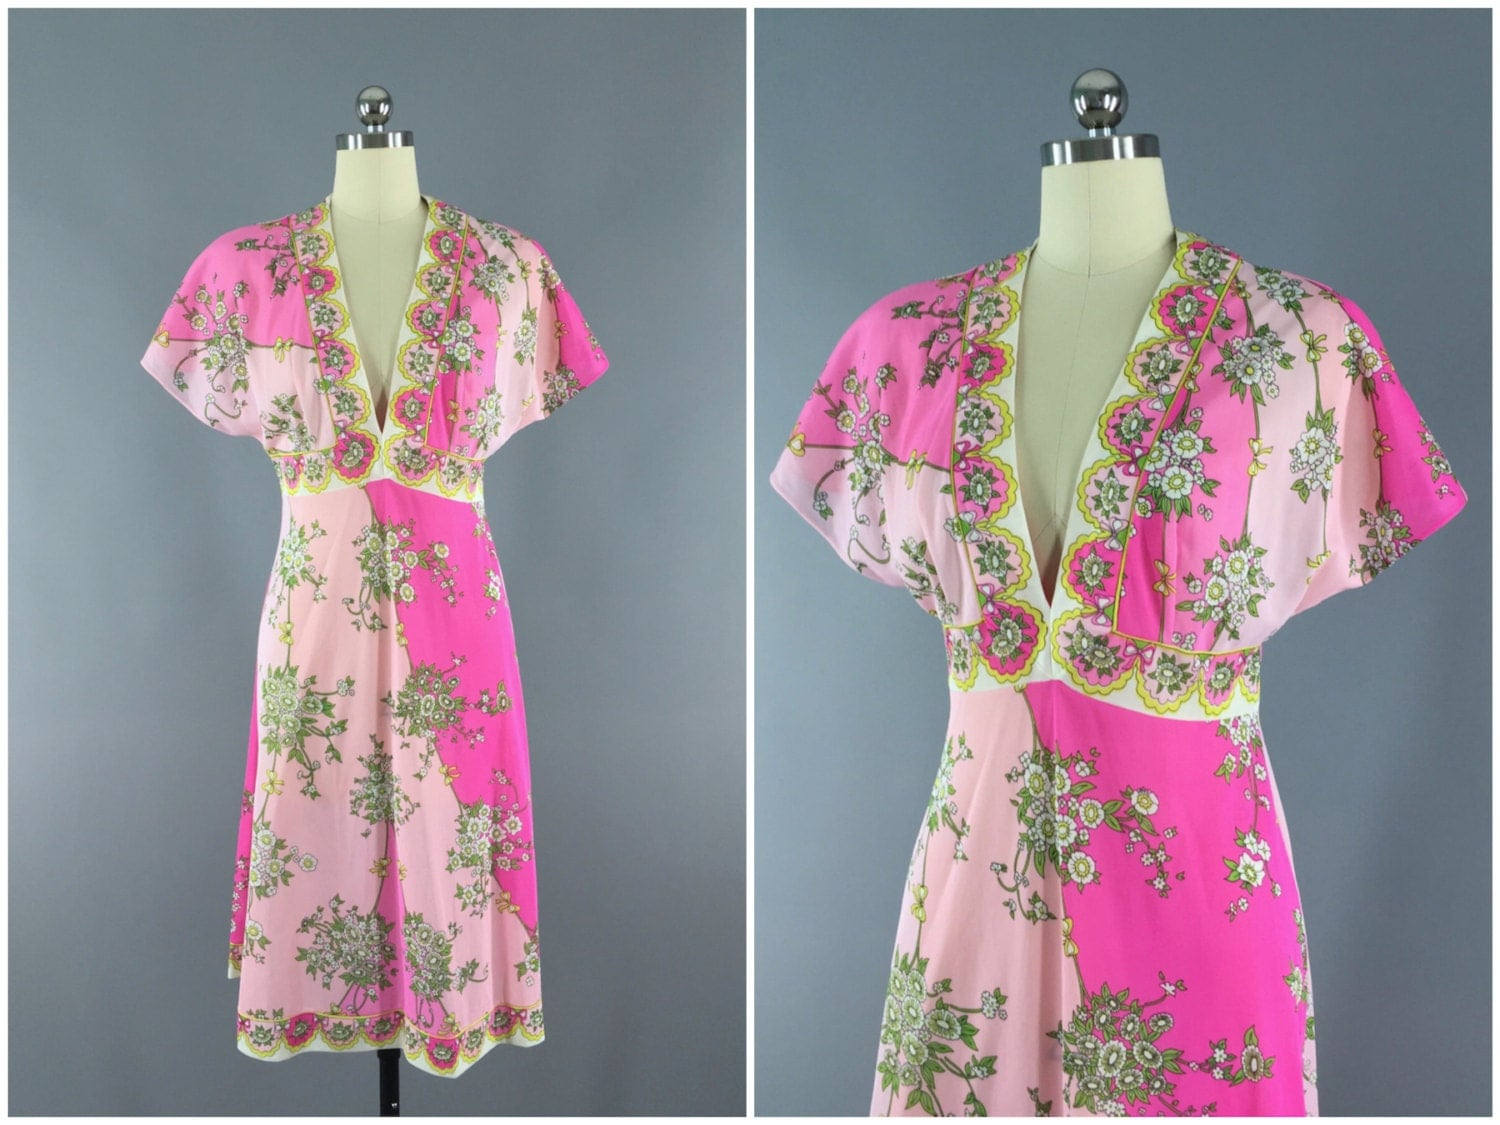 Vintage 1960s Emilio Pucci Nightgown Slip Dress / by ThisBlueBird